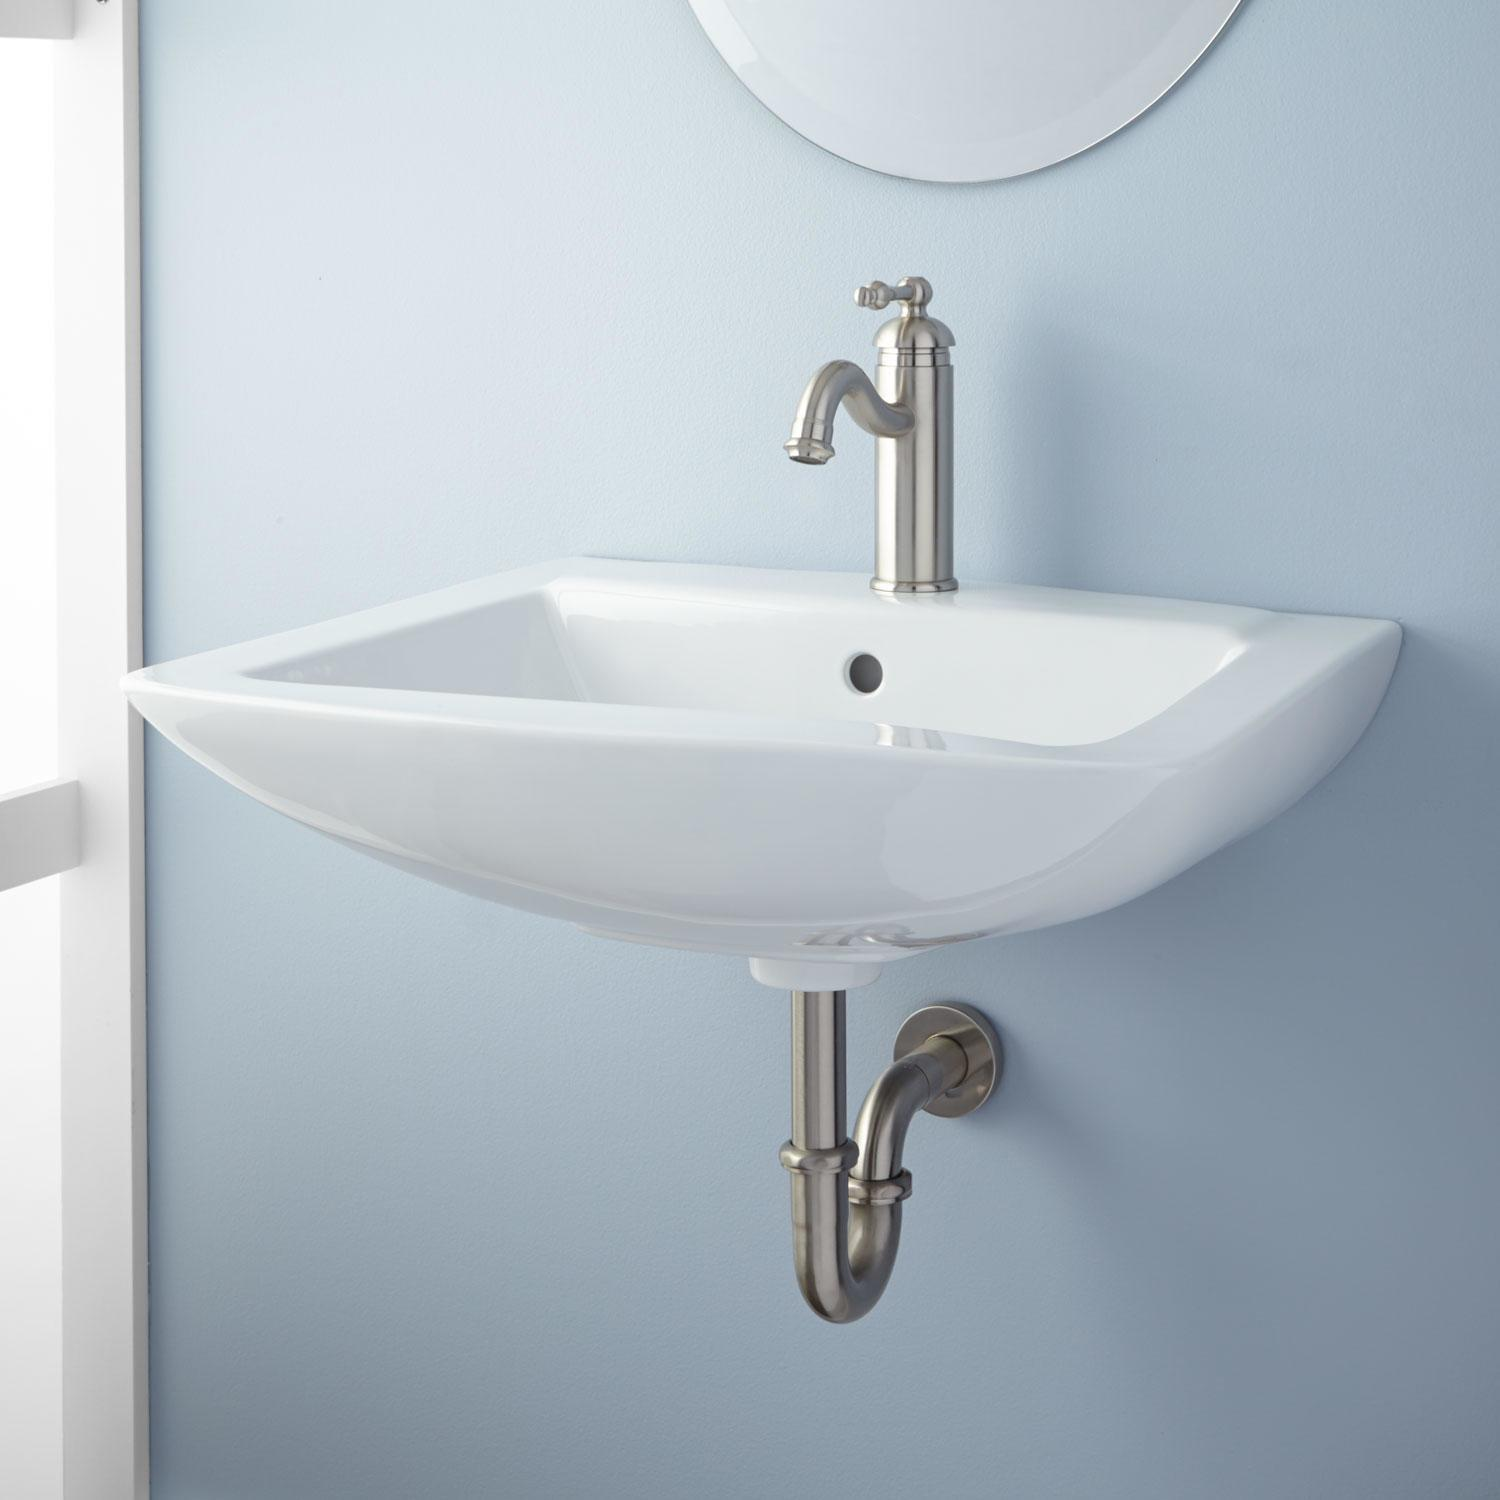 Darby Wall Mount Bathroom Sink